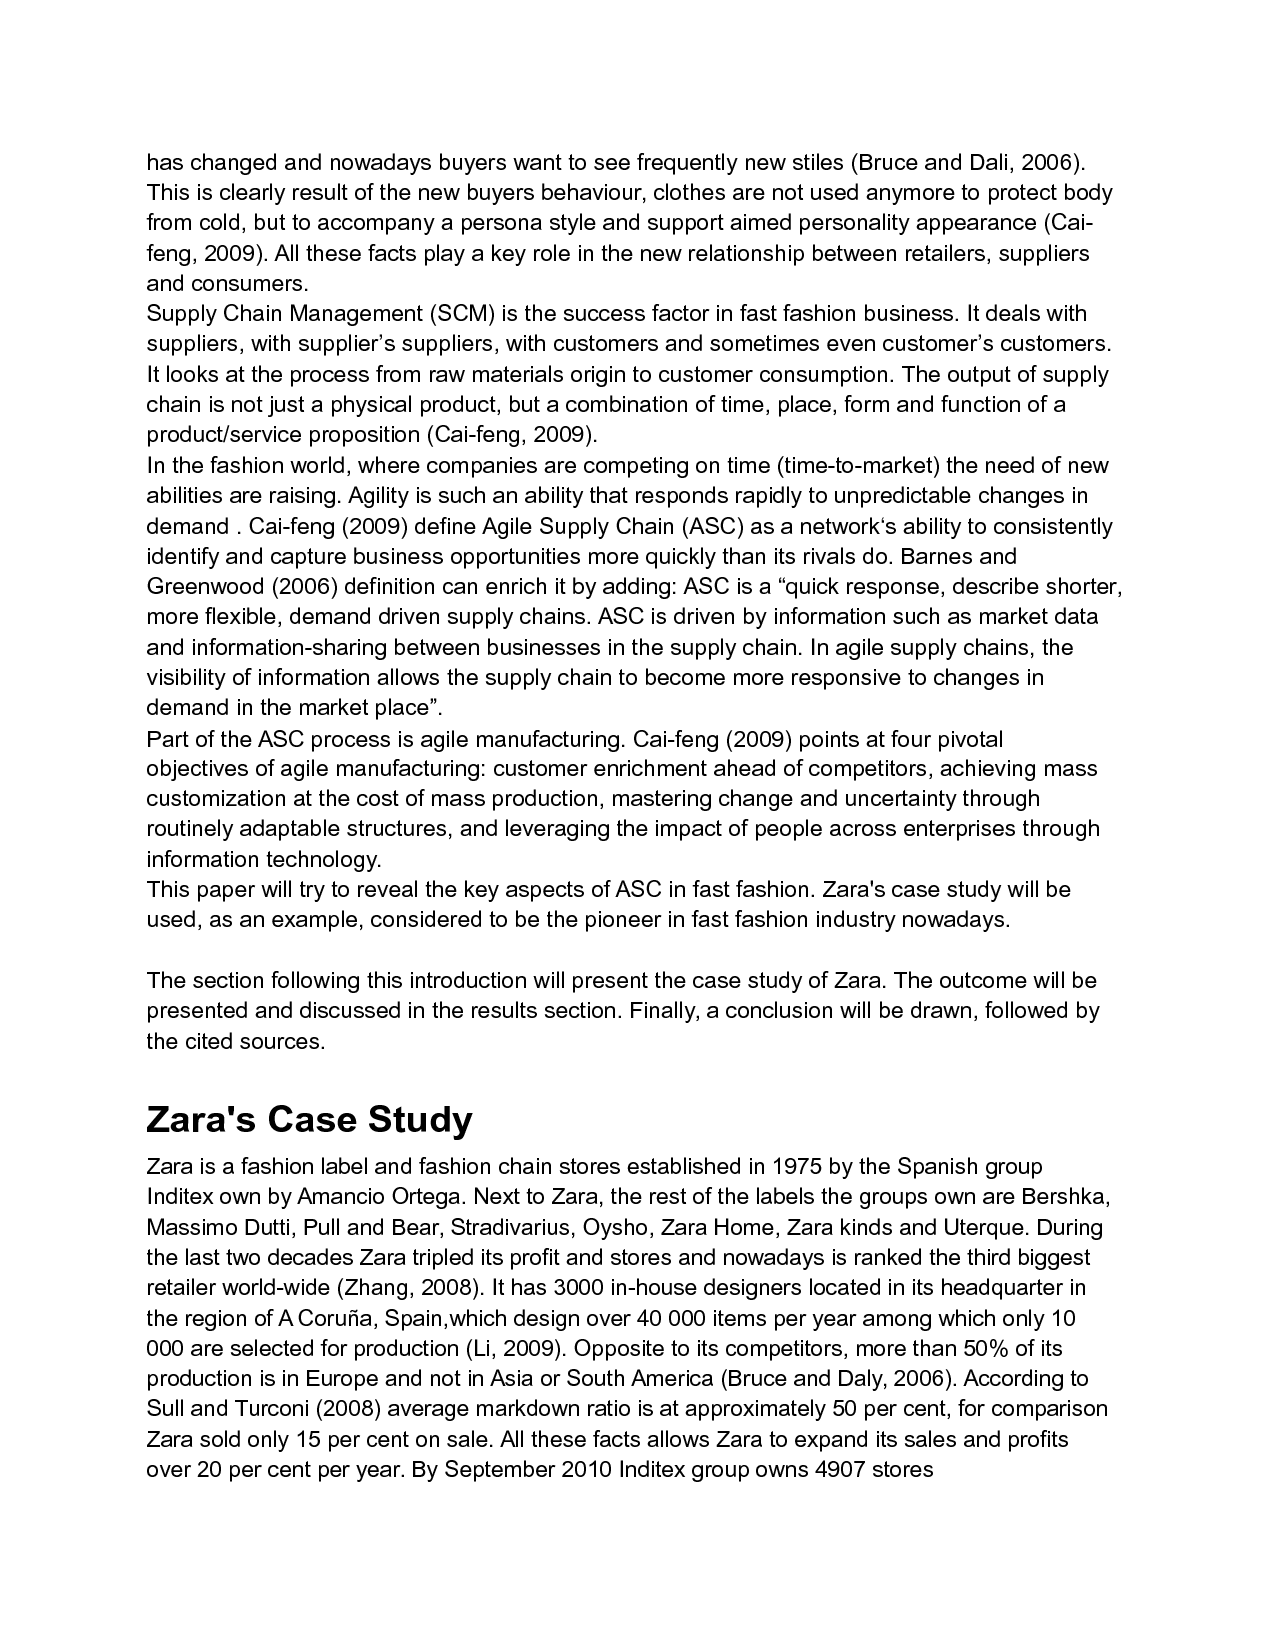 agile supply chain zara s case study analysis  ukabstractpurpose the purpose of this paper is to assess and document the key aspects in zara s success